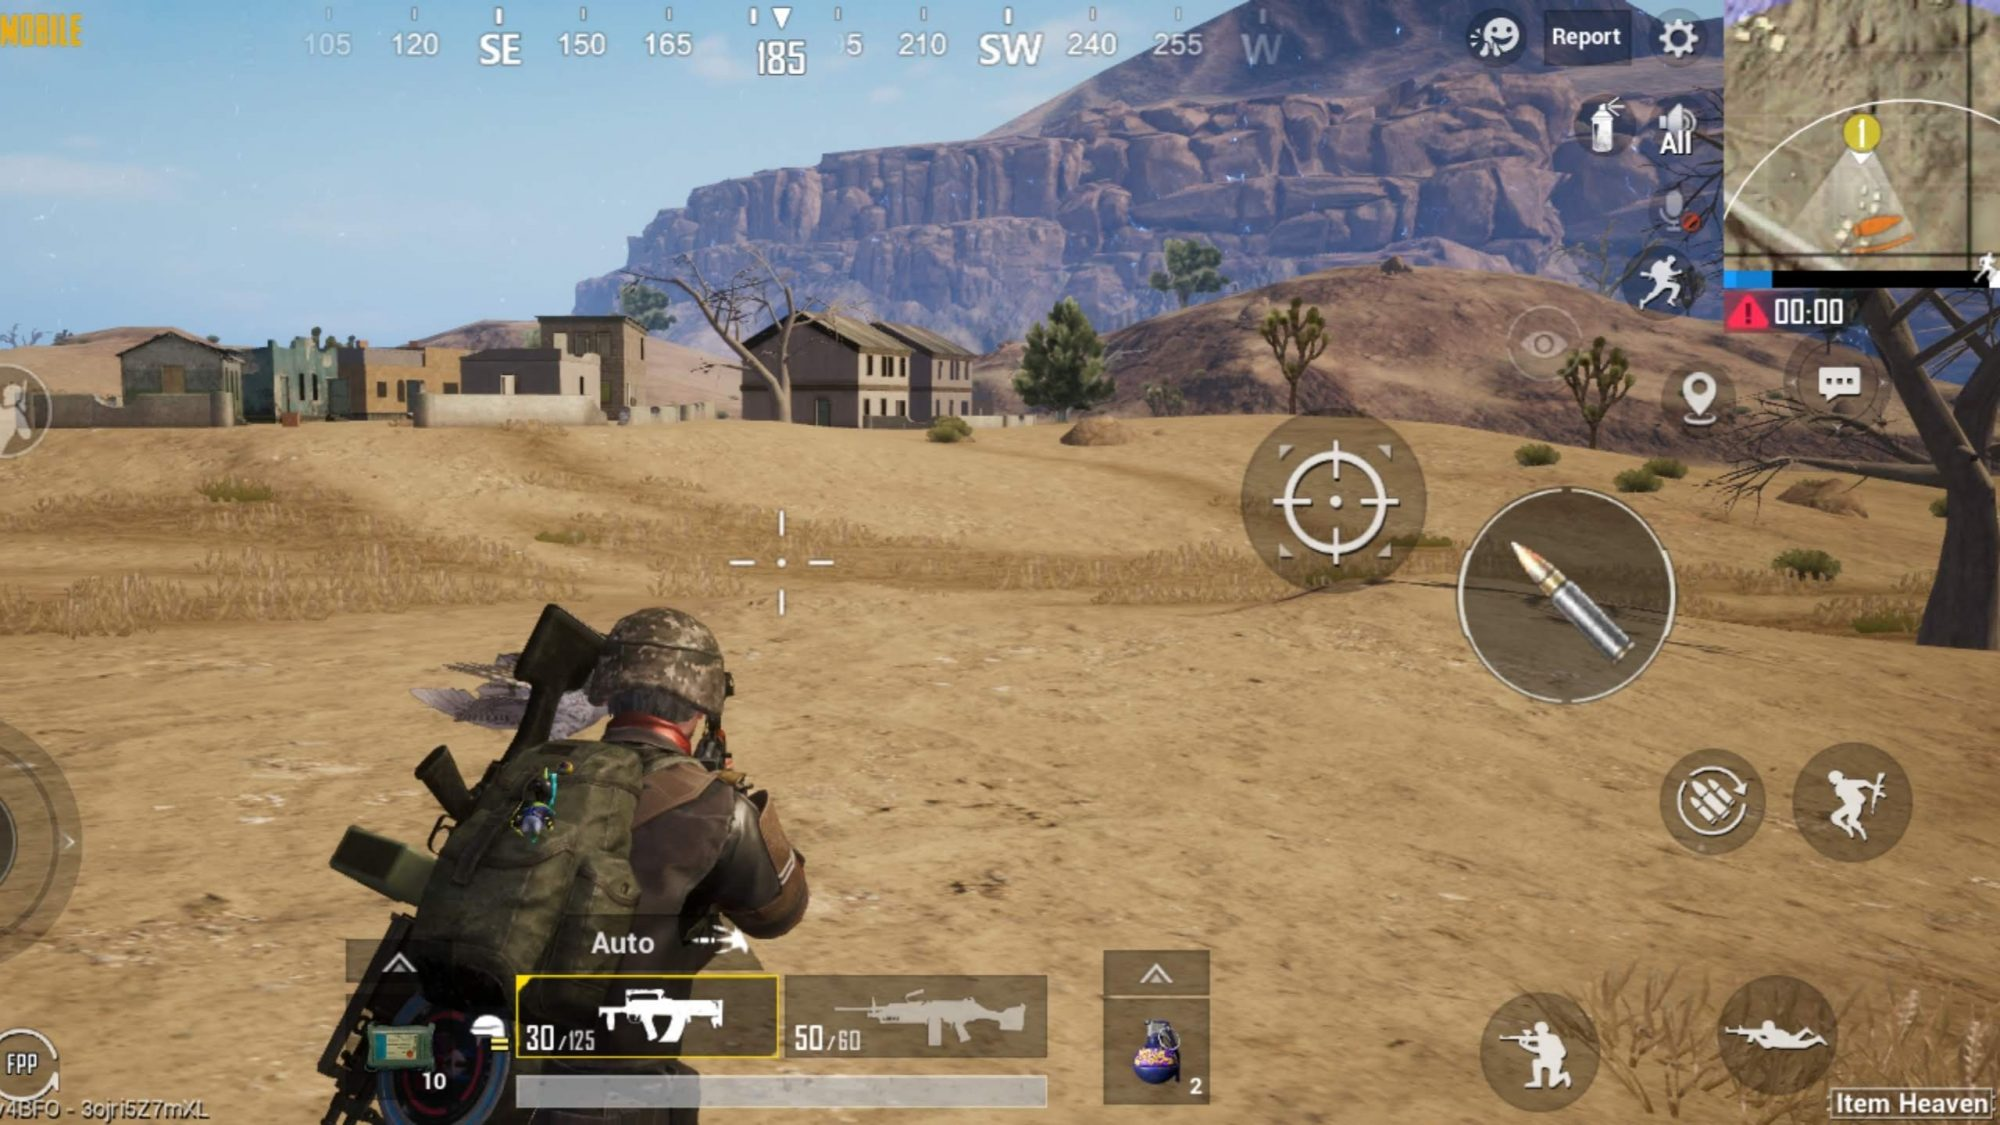 Pew, pew! Show me your PUBG Mobile setup